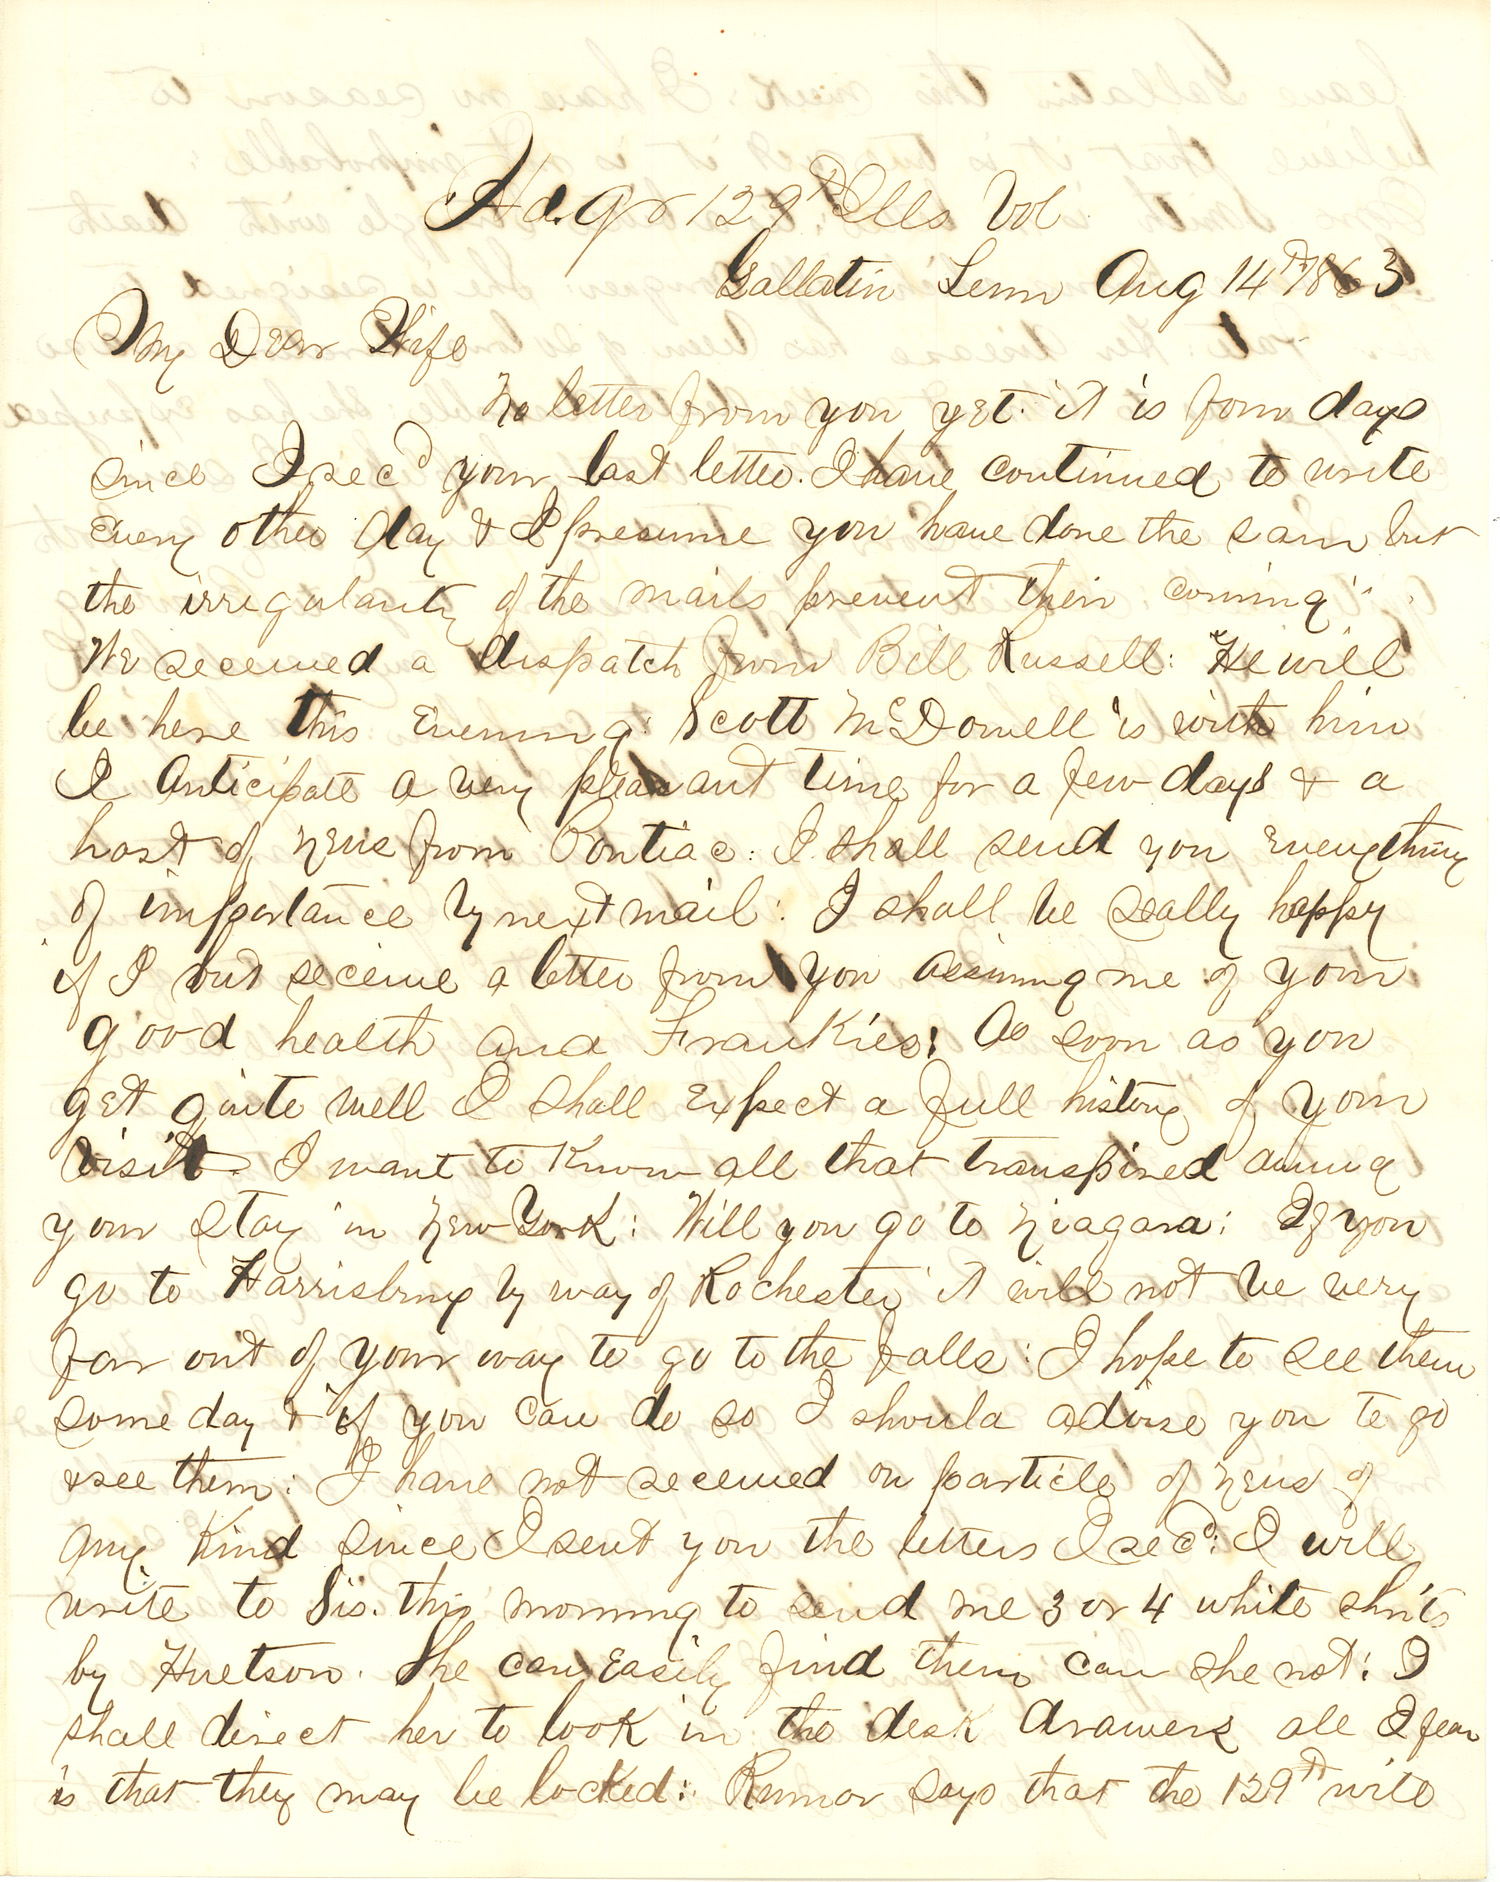 Joseph Culver Letter, August 14, 1863, Page 1